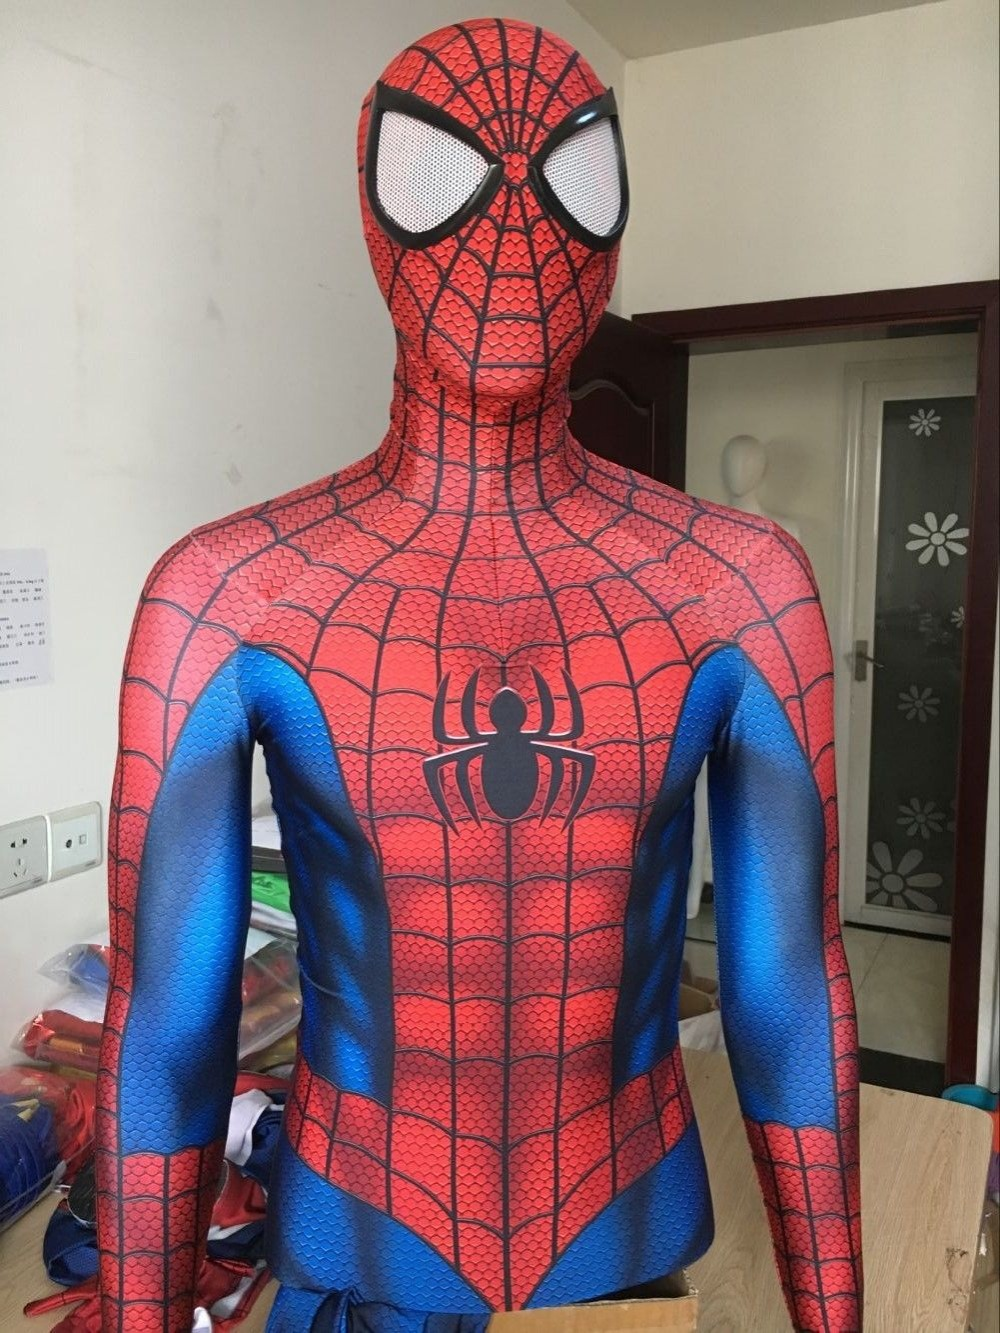 2017 New Spider-Man Superhero <font><b>Costume</b></font> 3D Print Fullbody Halloween Cosplay Suit <font><b>Spiderman</b></font> <font><b>Costume</b></font> For Adult/Kids/Custom Made